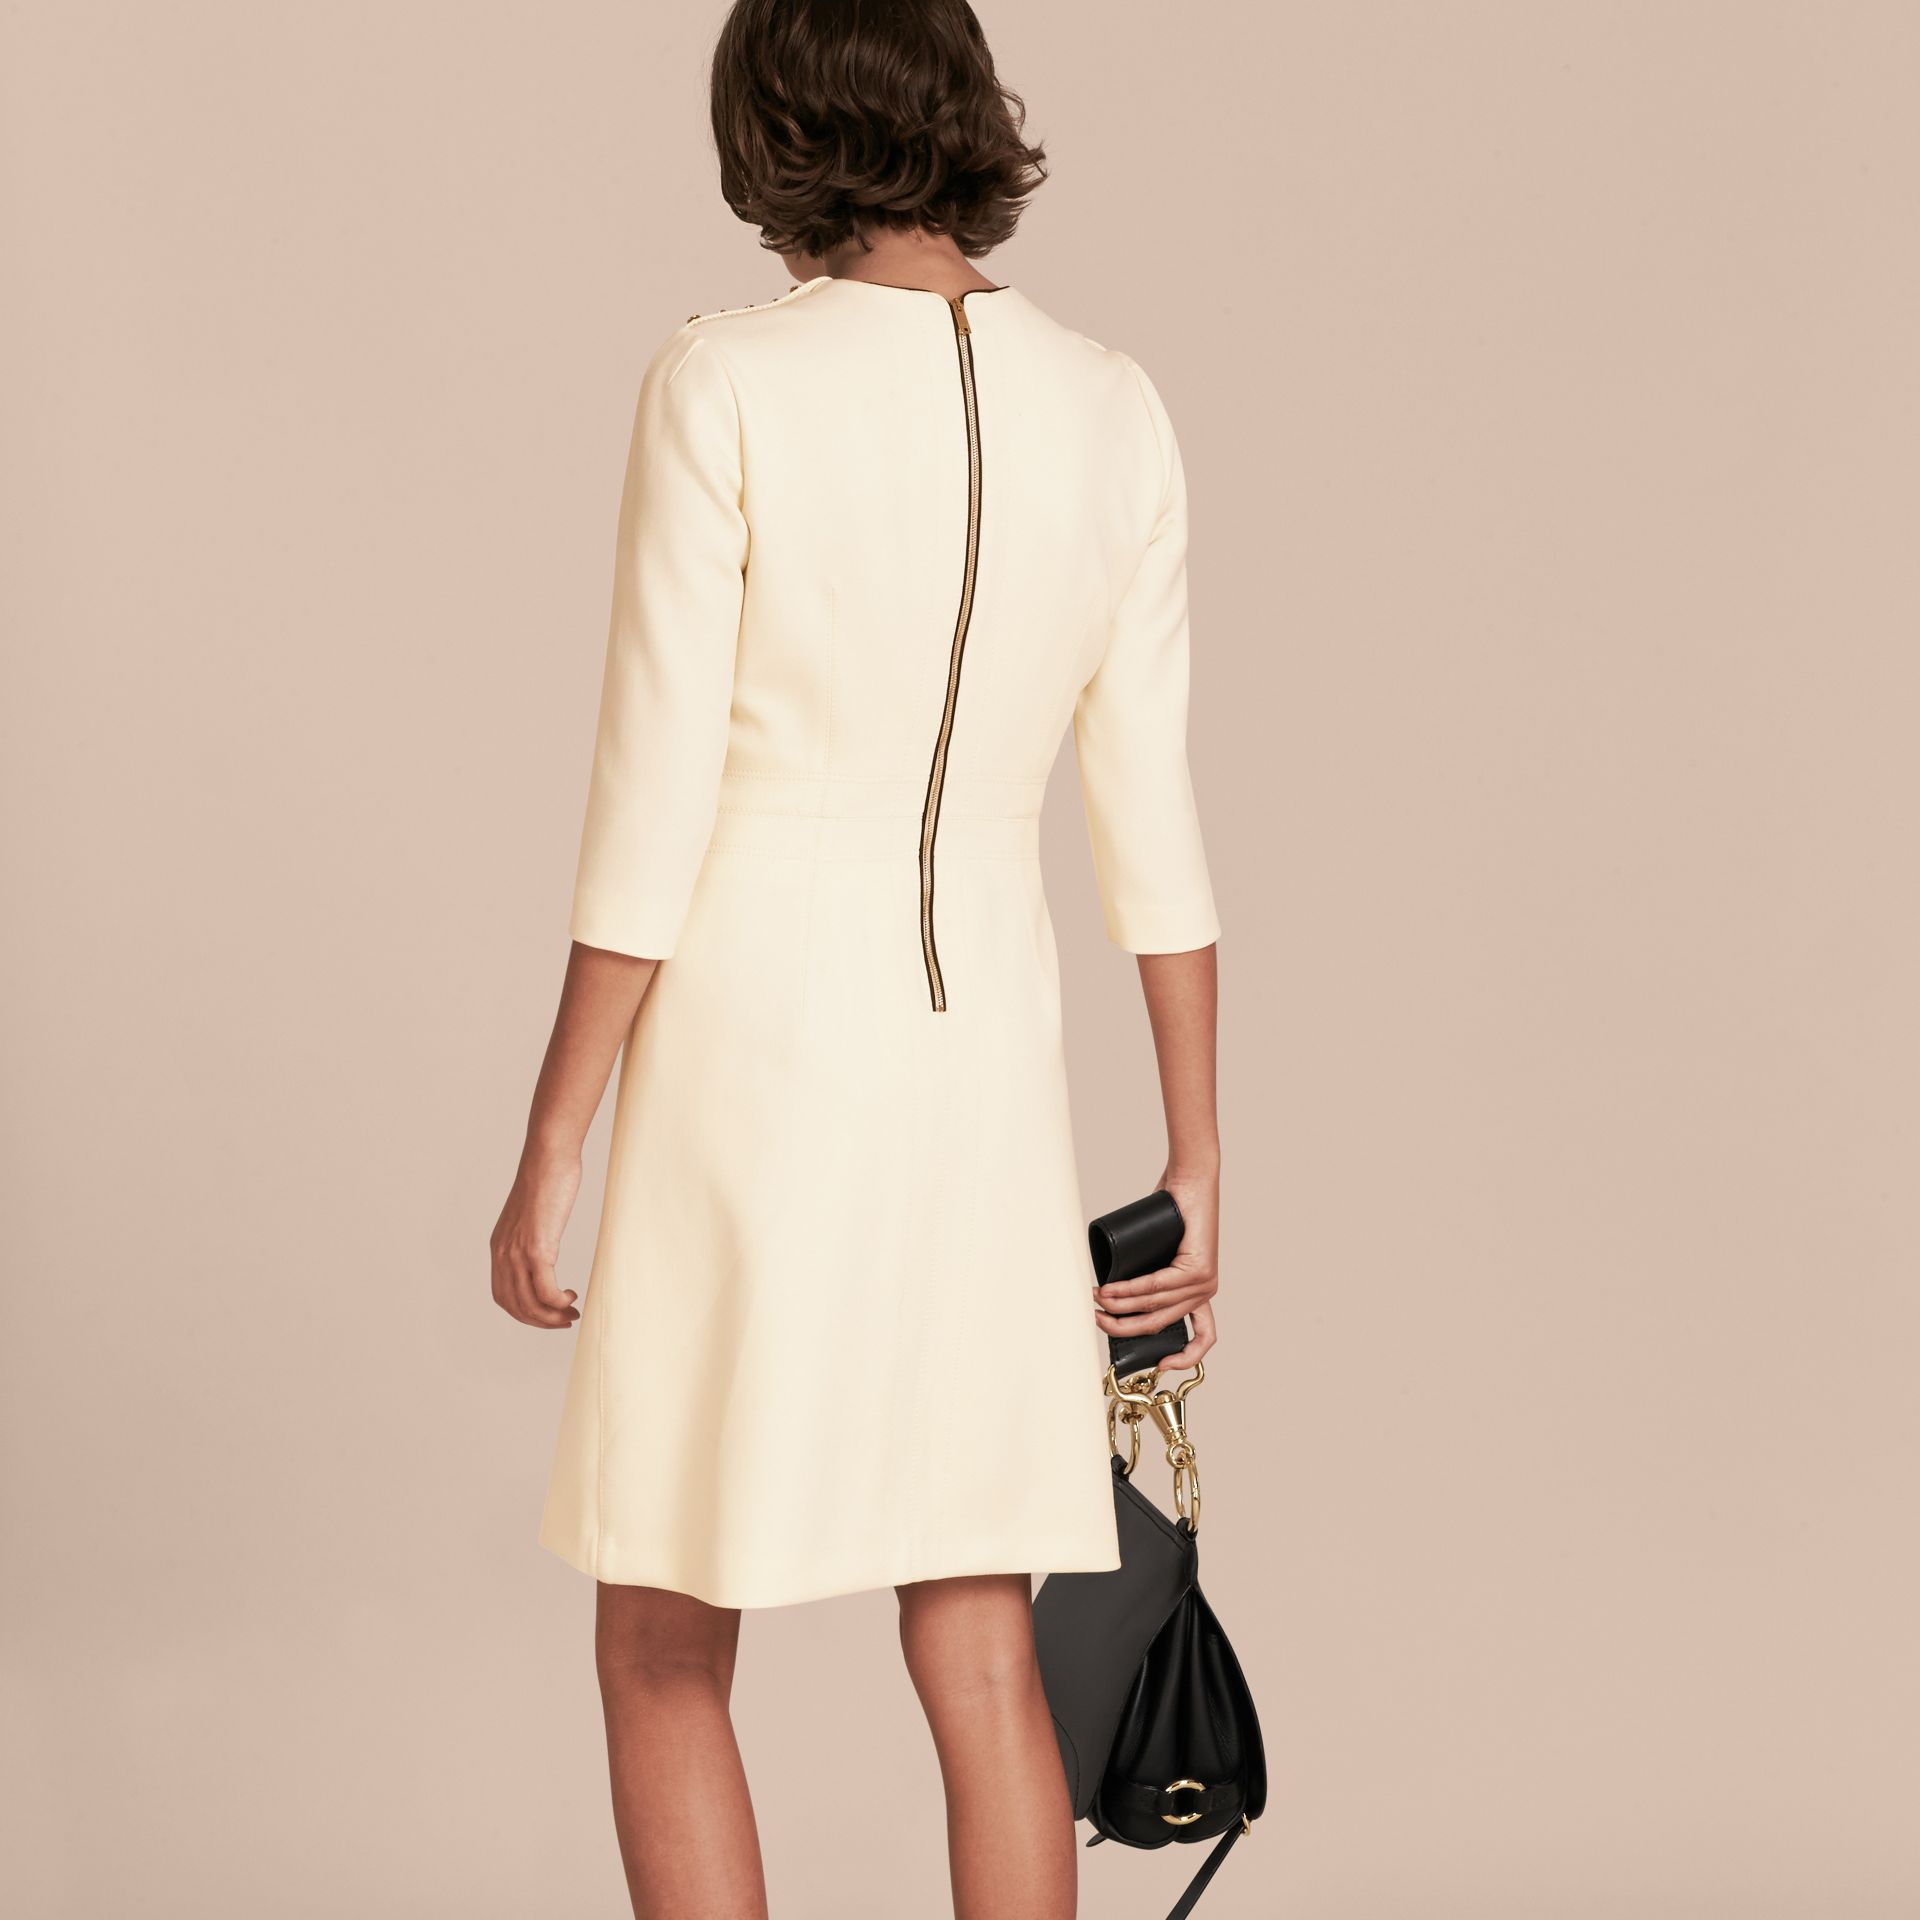 White Button Detail Wool Blend Crepe Dress - gallery image 3